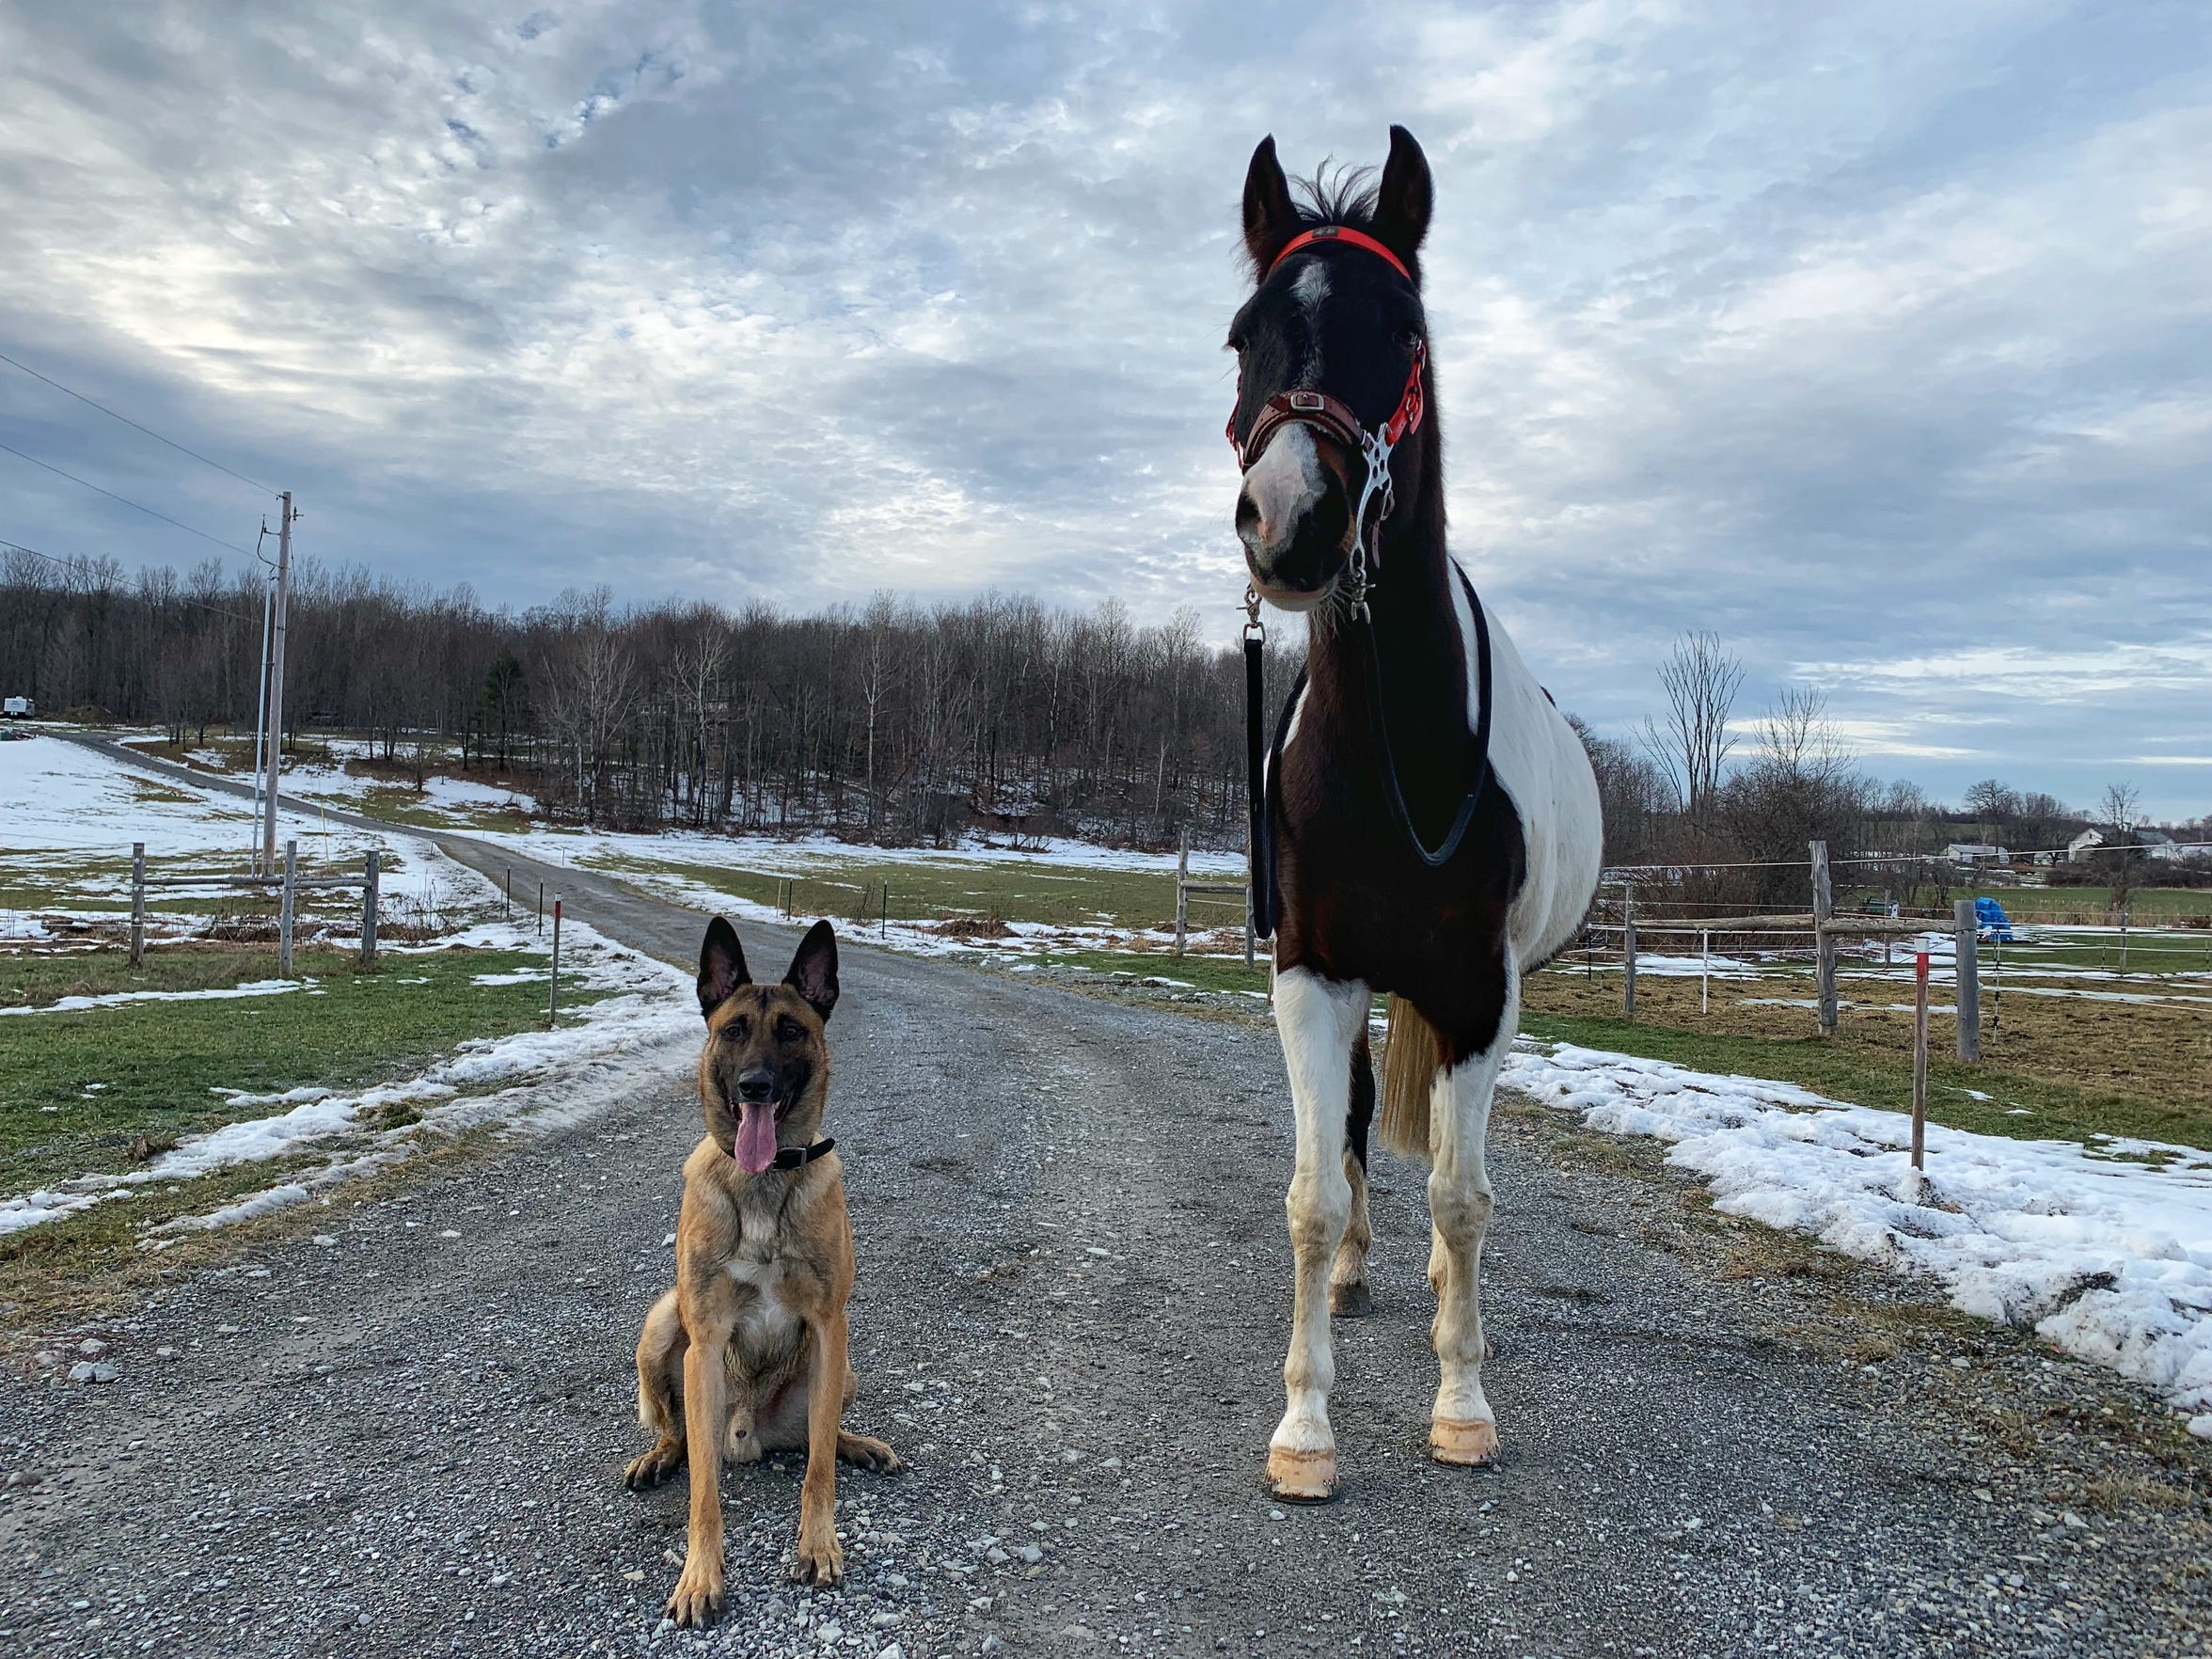 South Burlington Police K9 Rush poses with one of his horse brothers, Rowan, on Dec. 20, 2018.